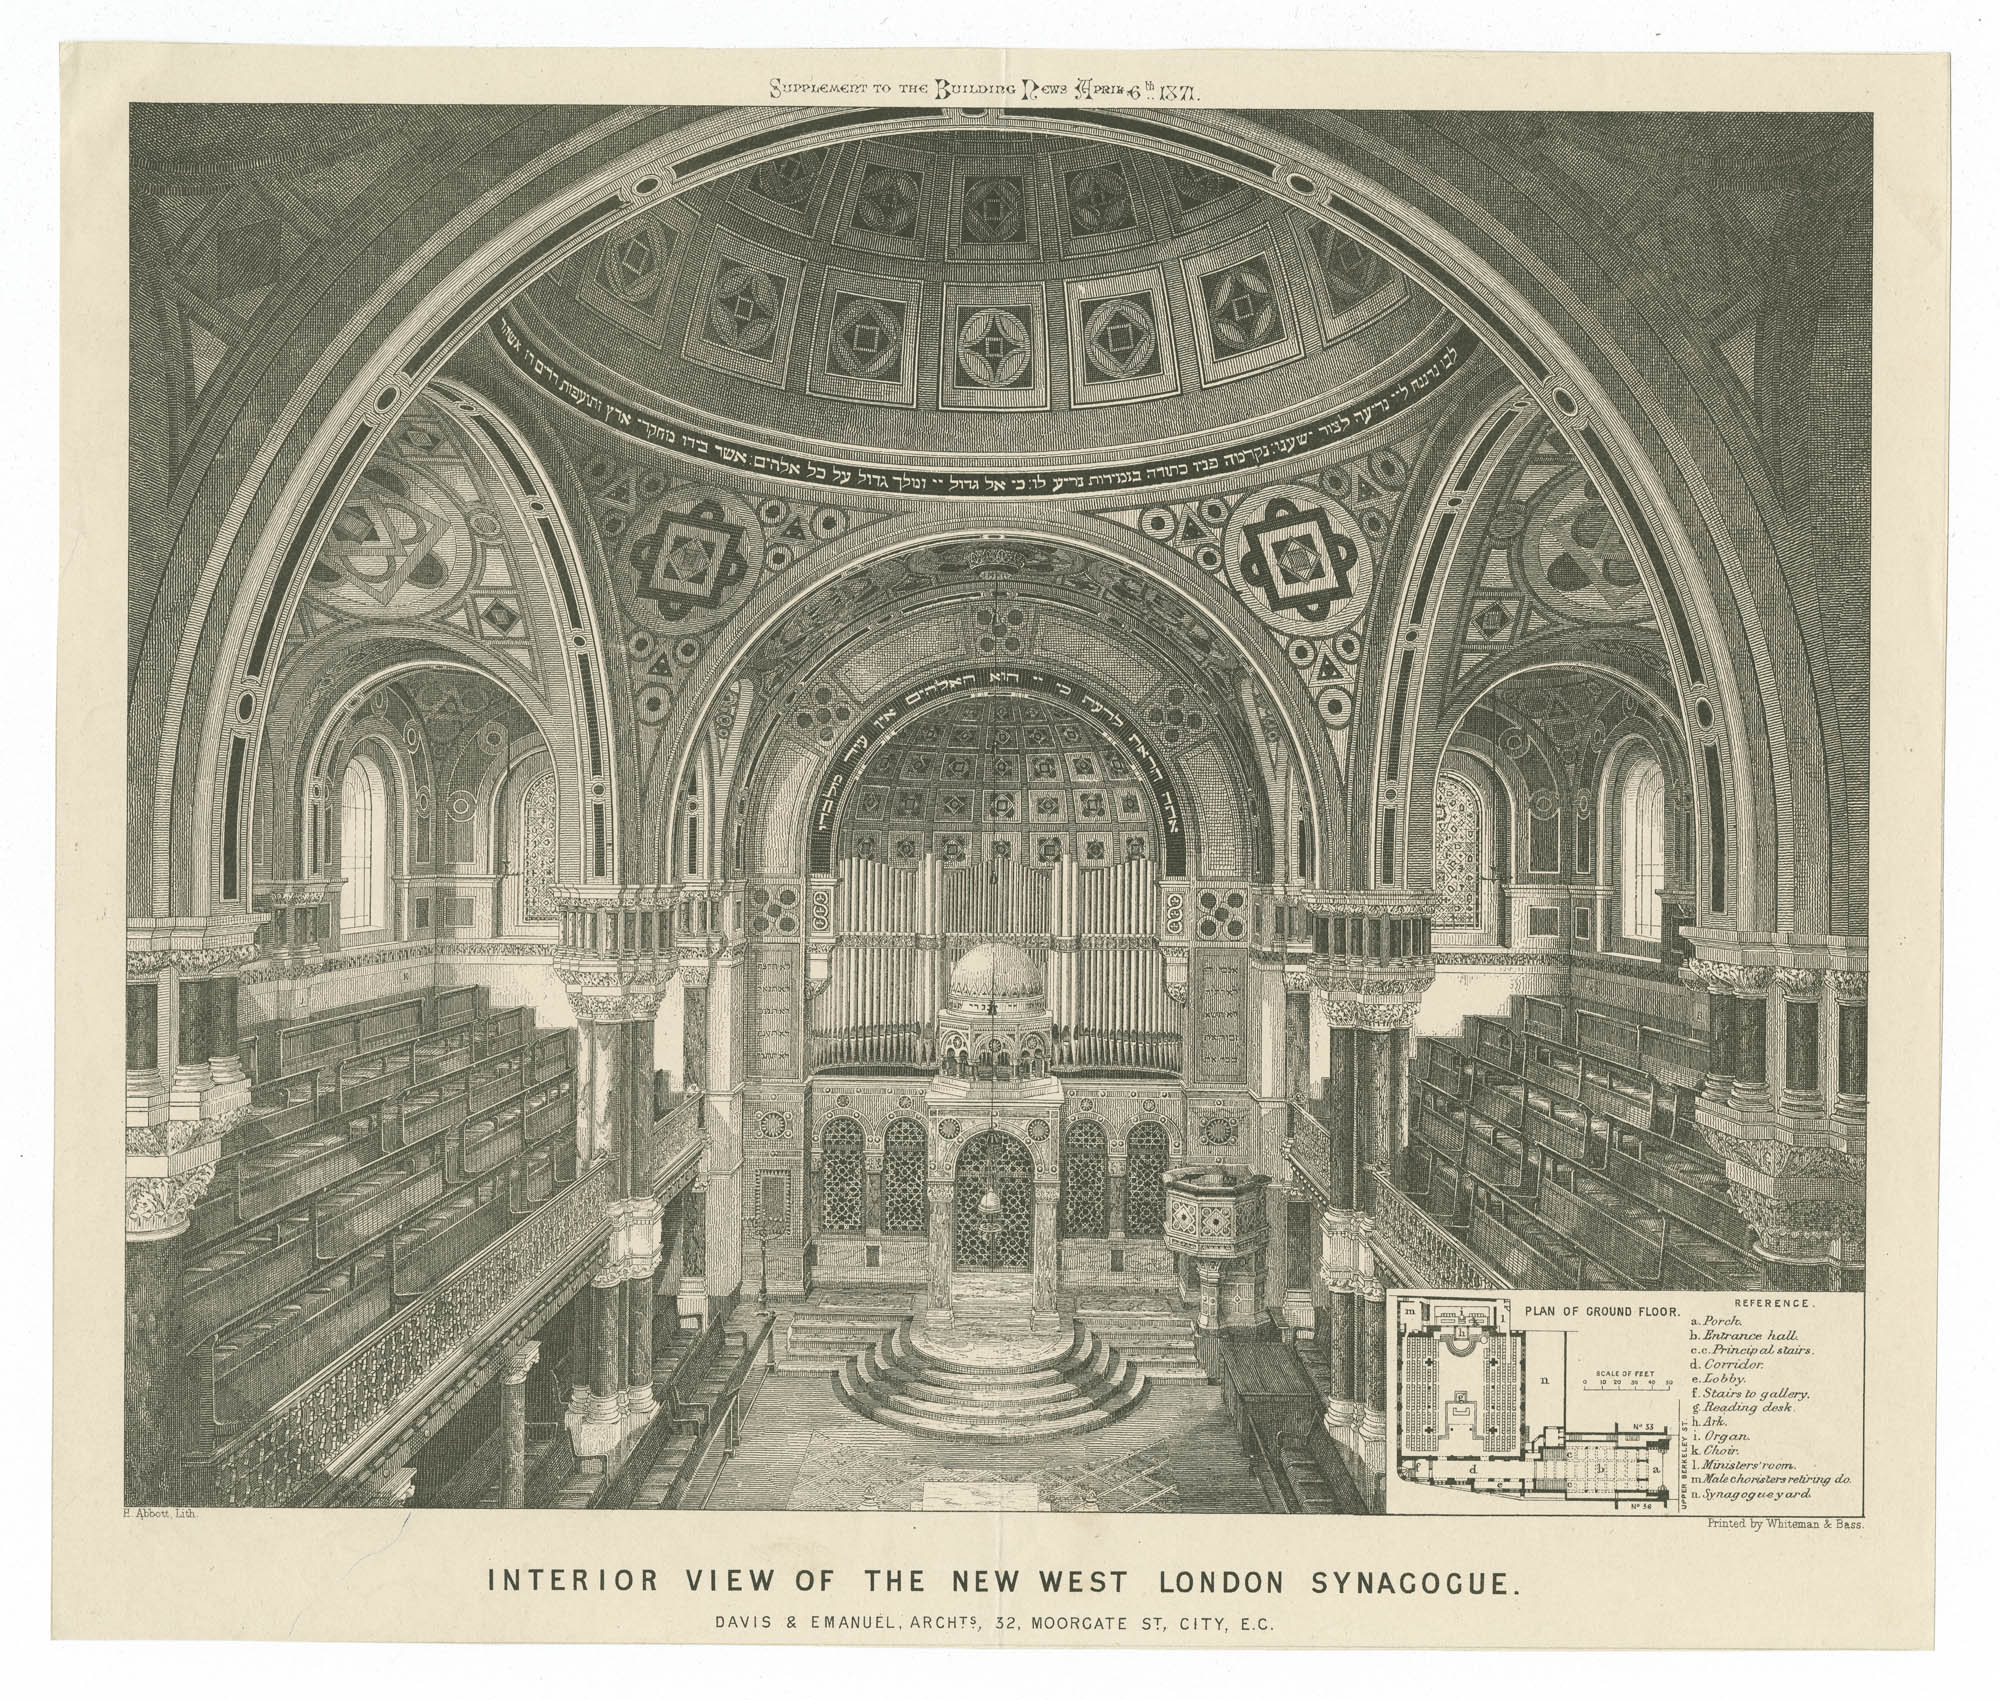 Interior view of the new West London Synagogue